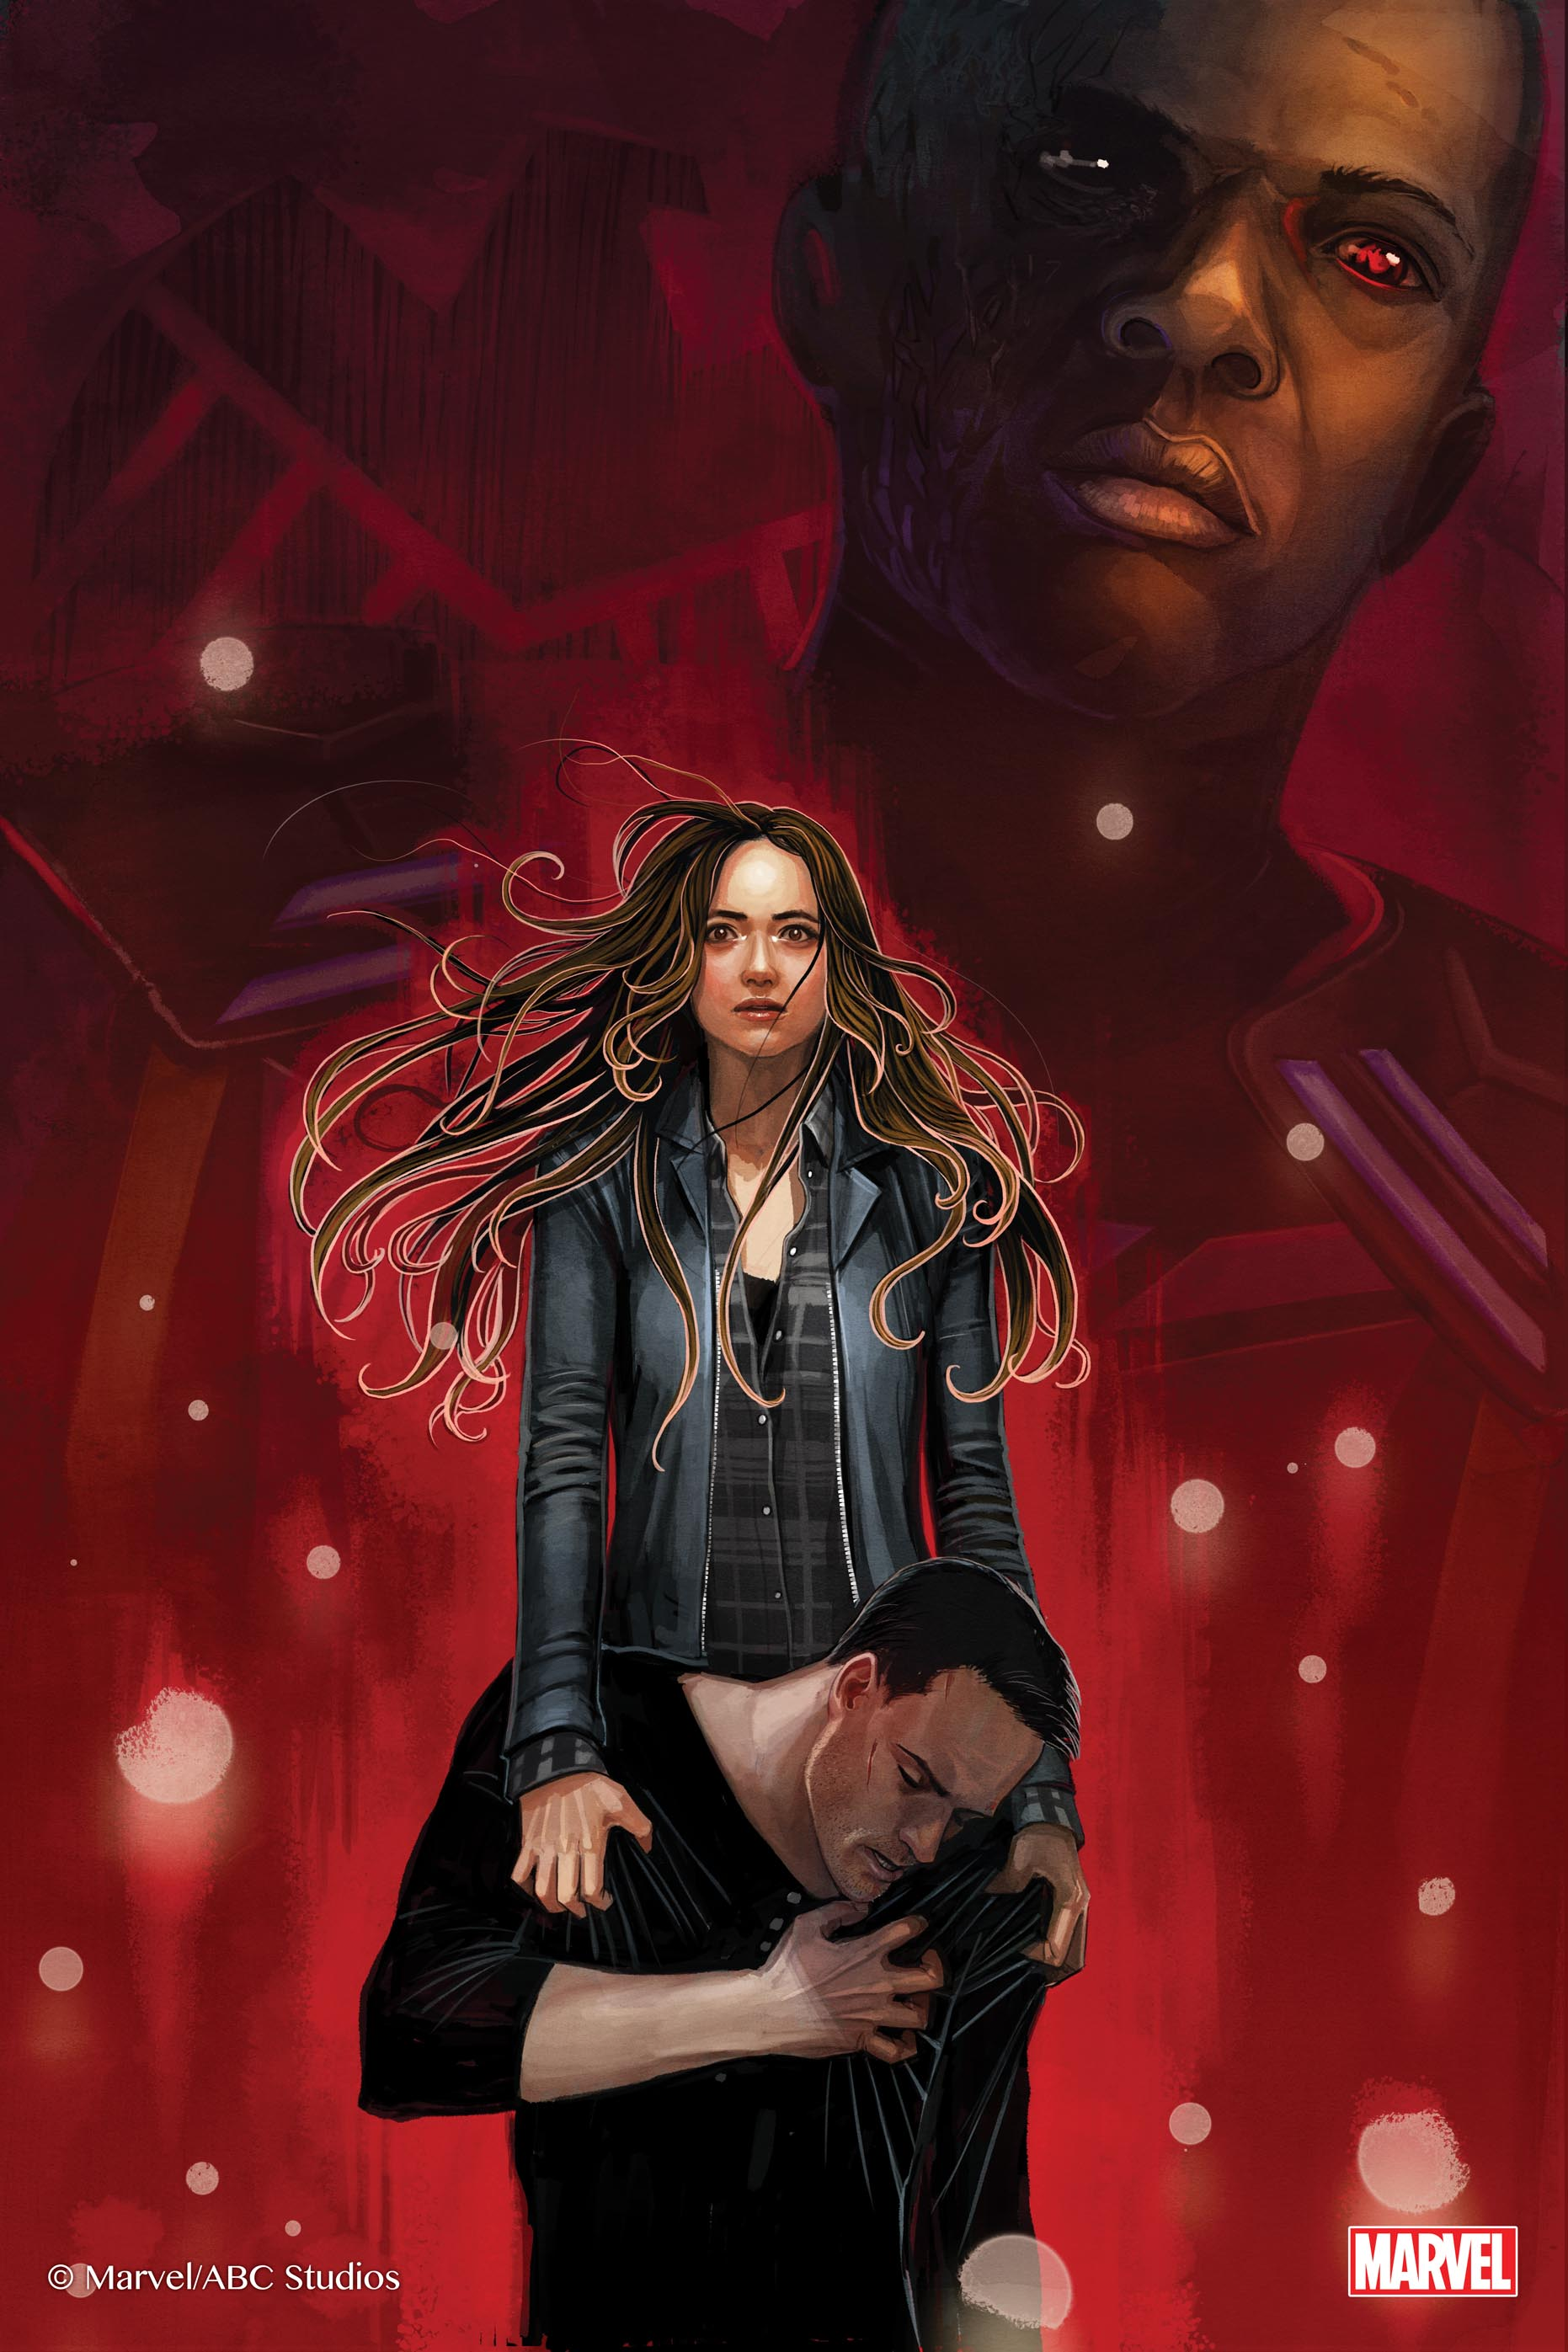 Stephanie Hans Joins Marvel's Agents of S.H.I.E.L.D. The Art of Level 7